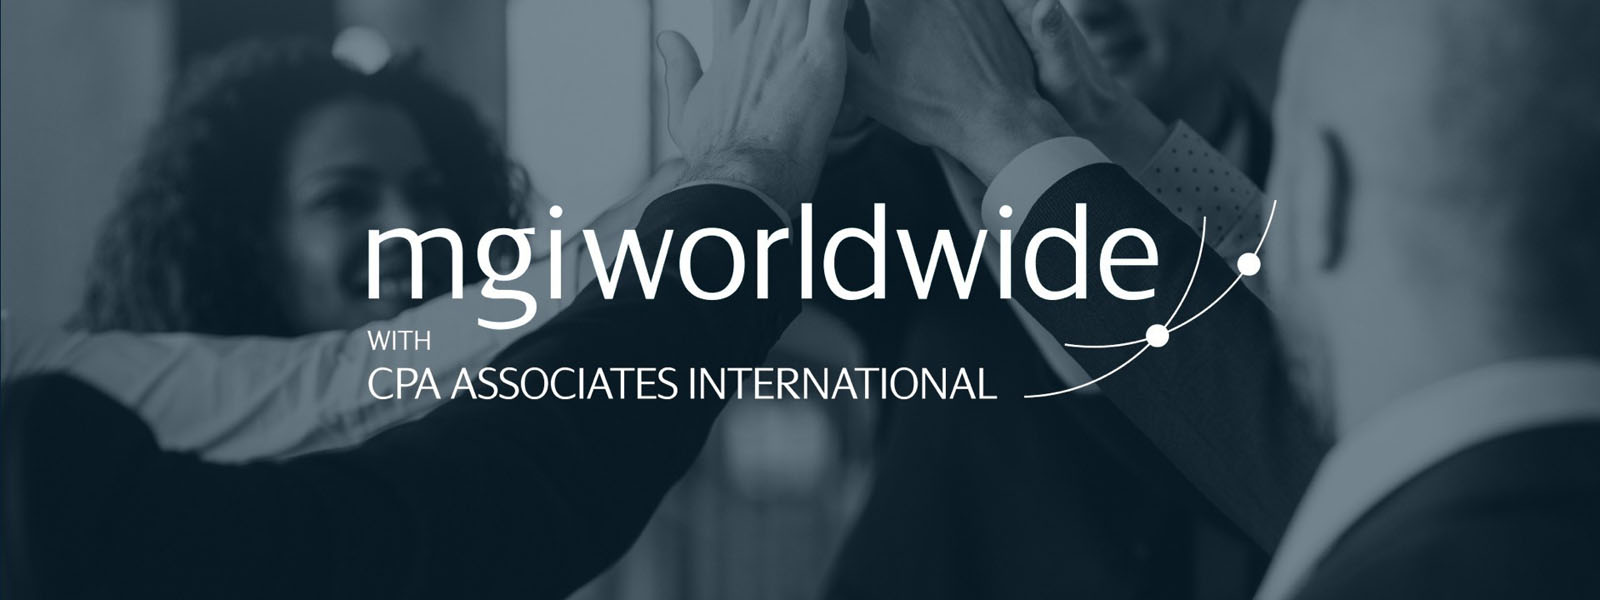 MGI Worldwide and CPAAI Merger Image